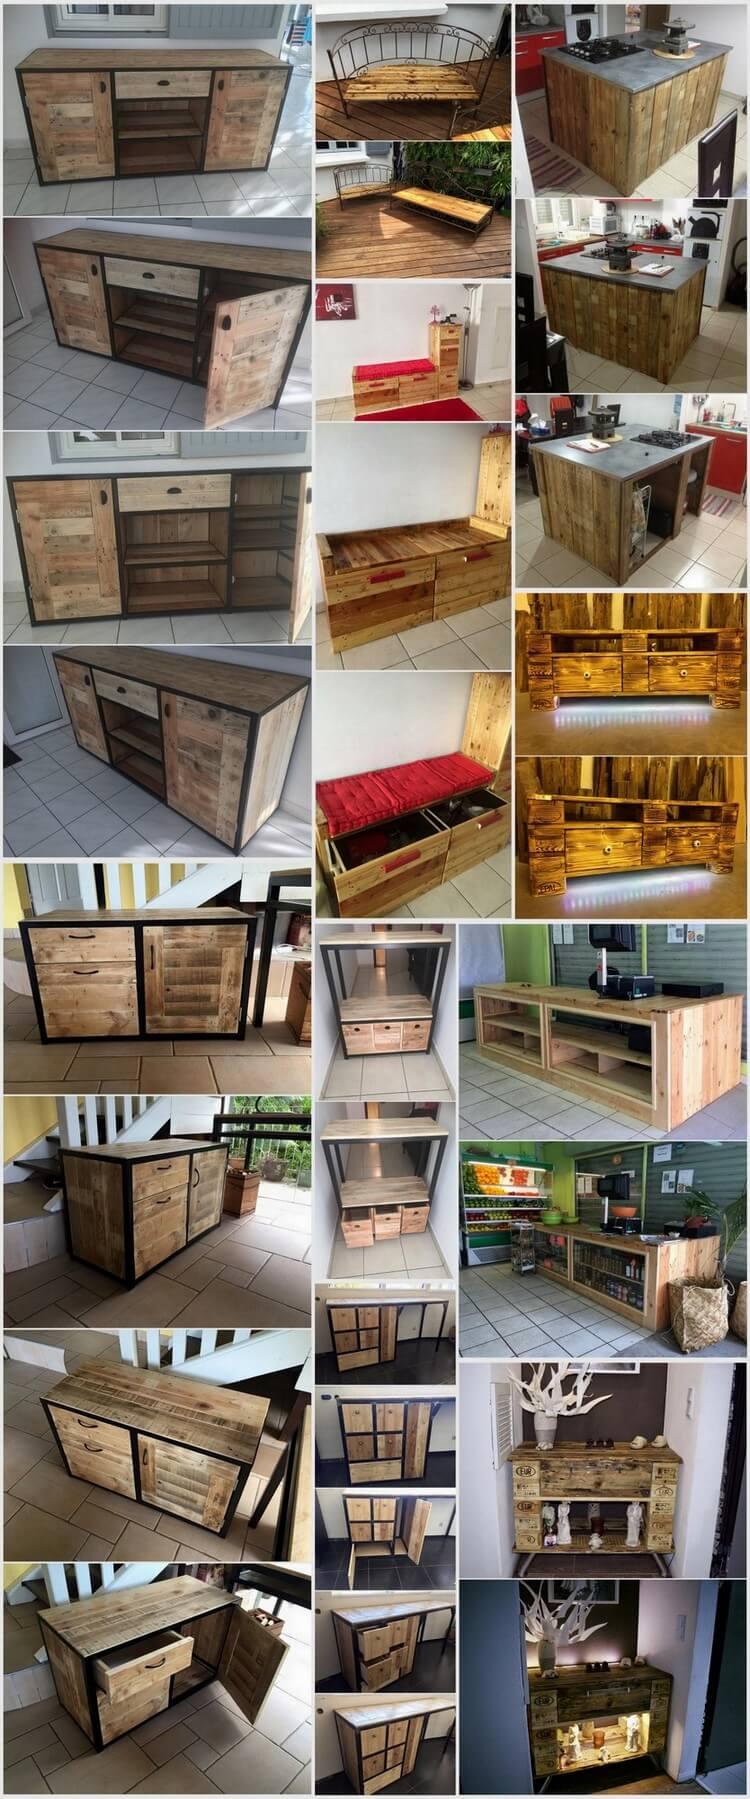 Astonishing Projects for Wood Pallet Recycling